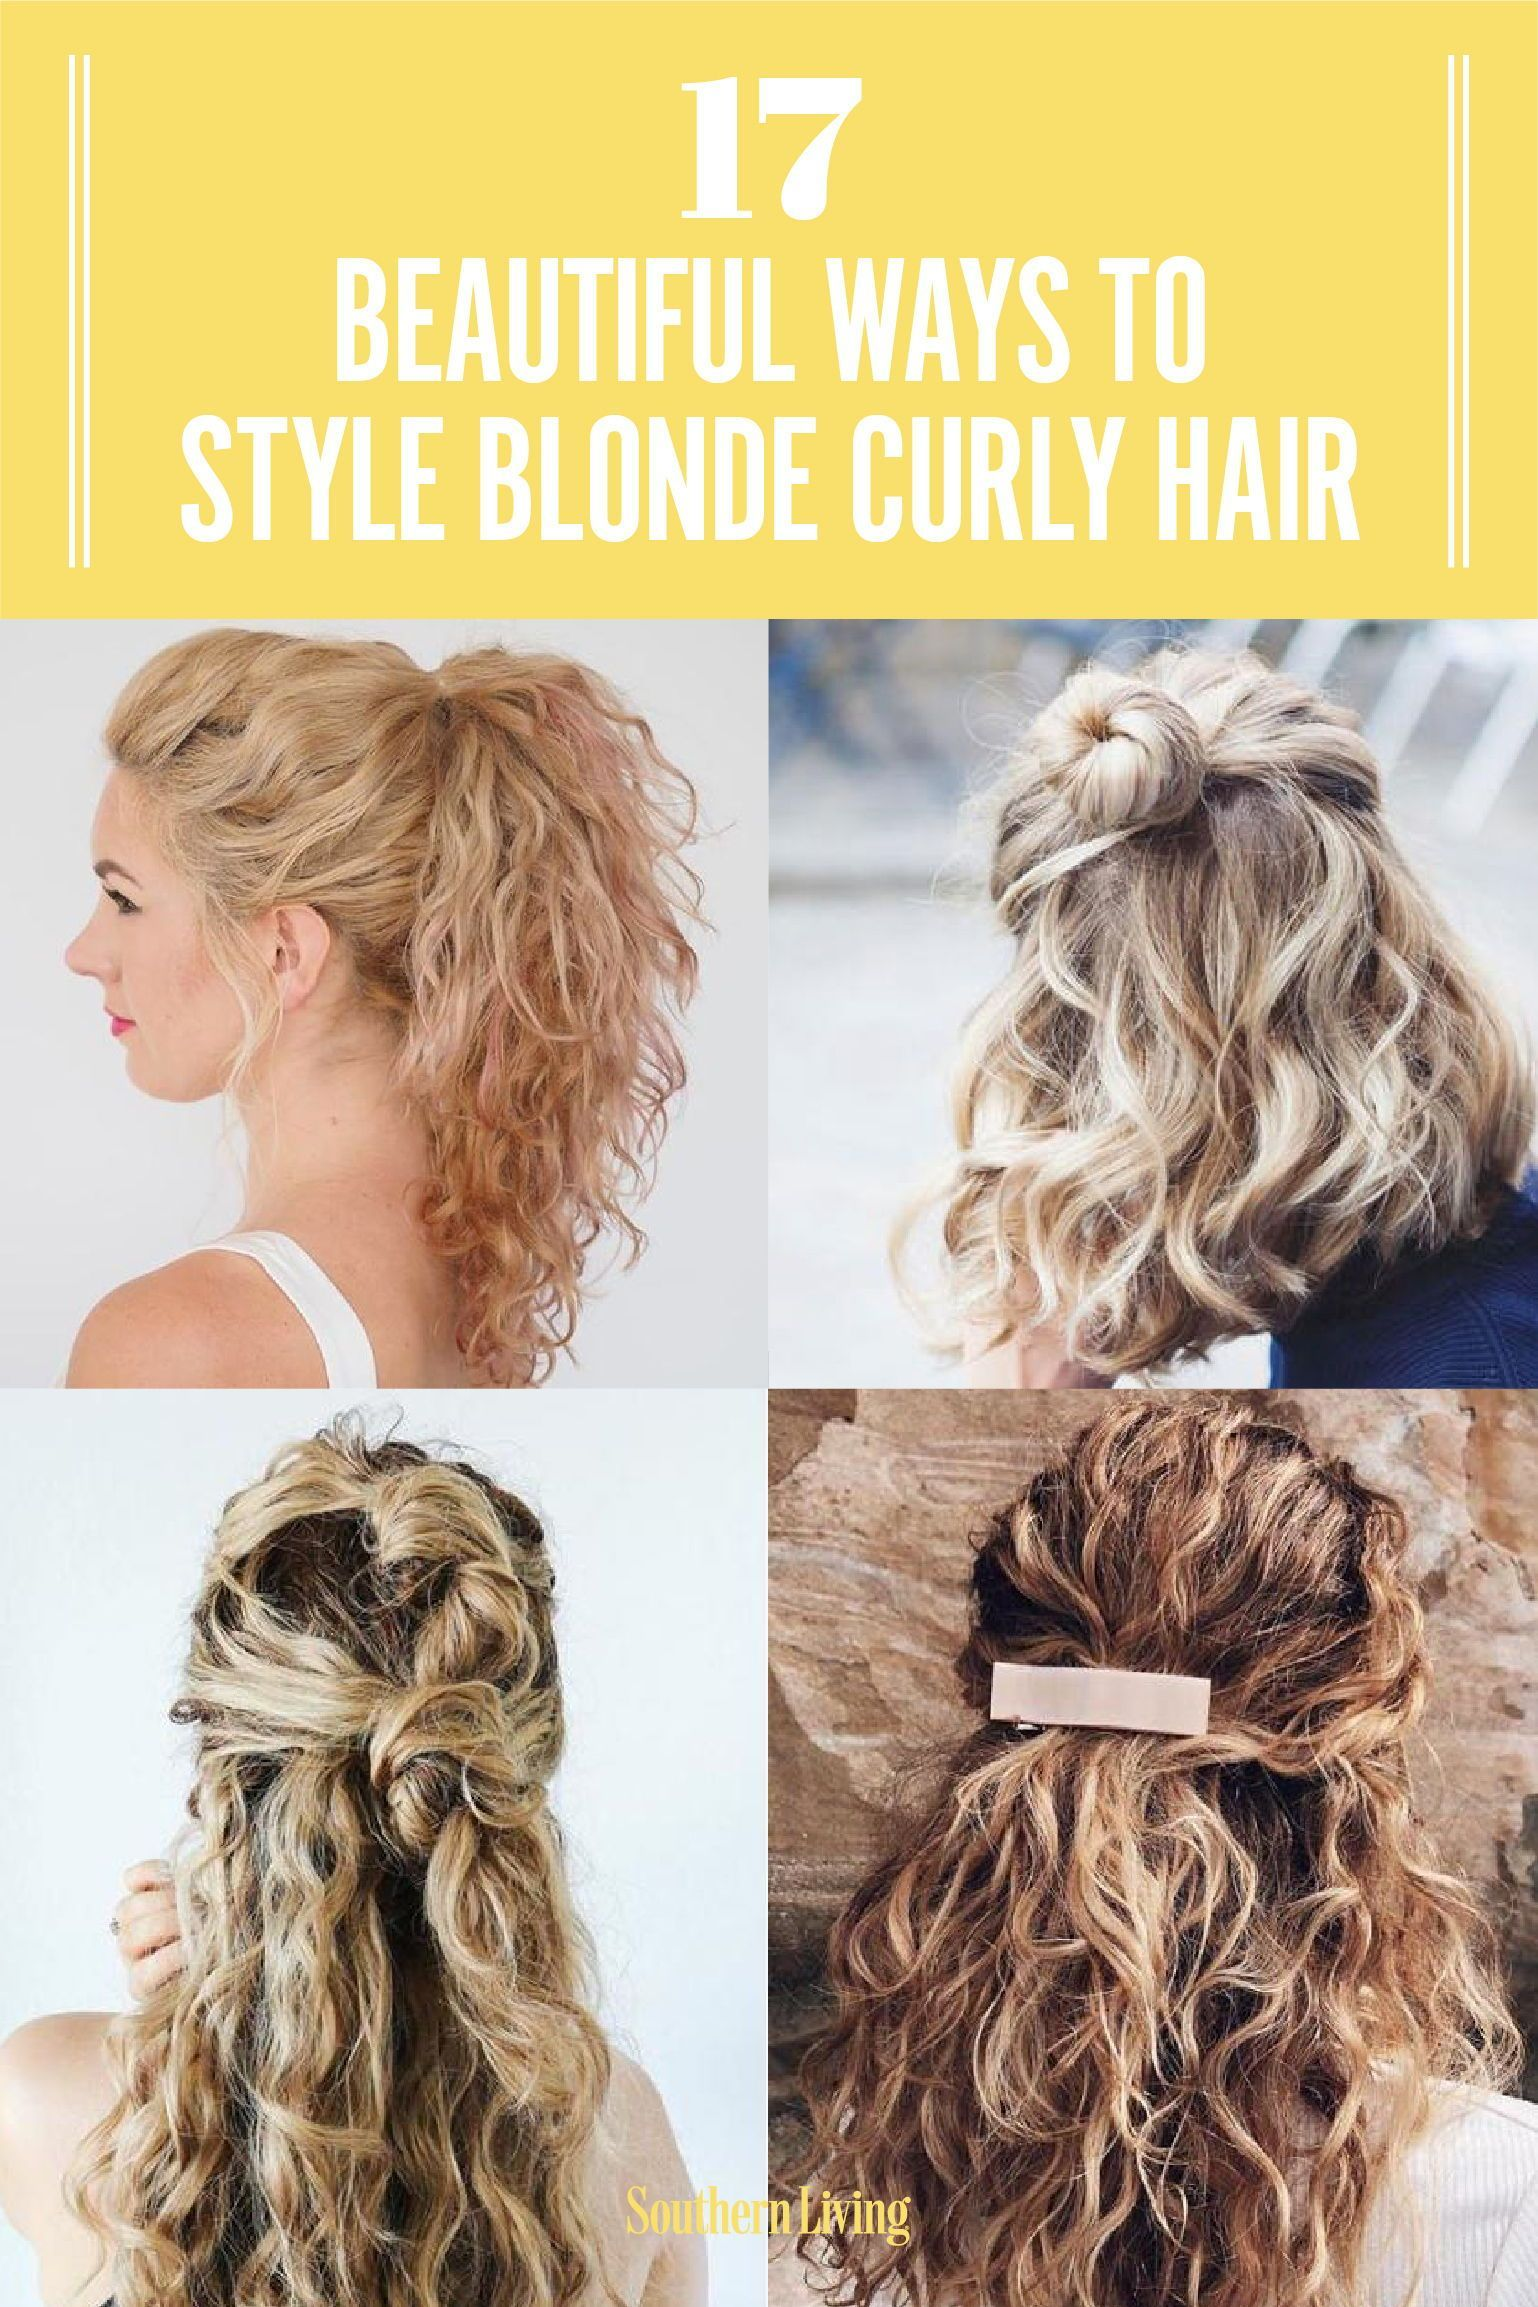 17 Beautiful Ways To Style Blonde Curly Hair In 2020 Curly Hair Styles Easy Curly Hair Styles Naturally Blonde Curly Hair